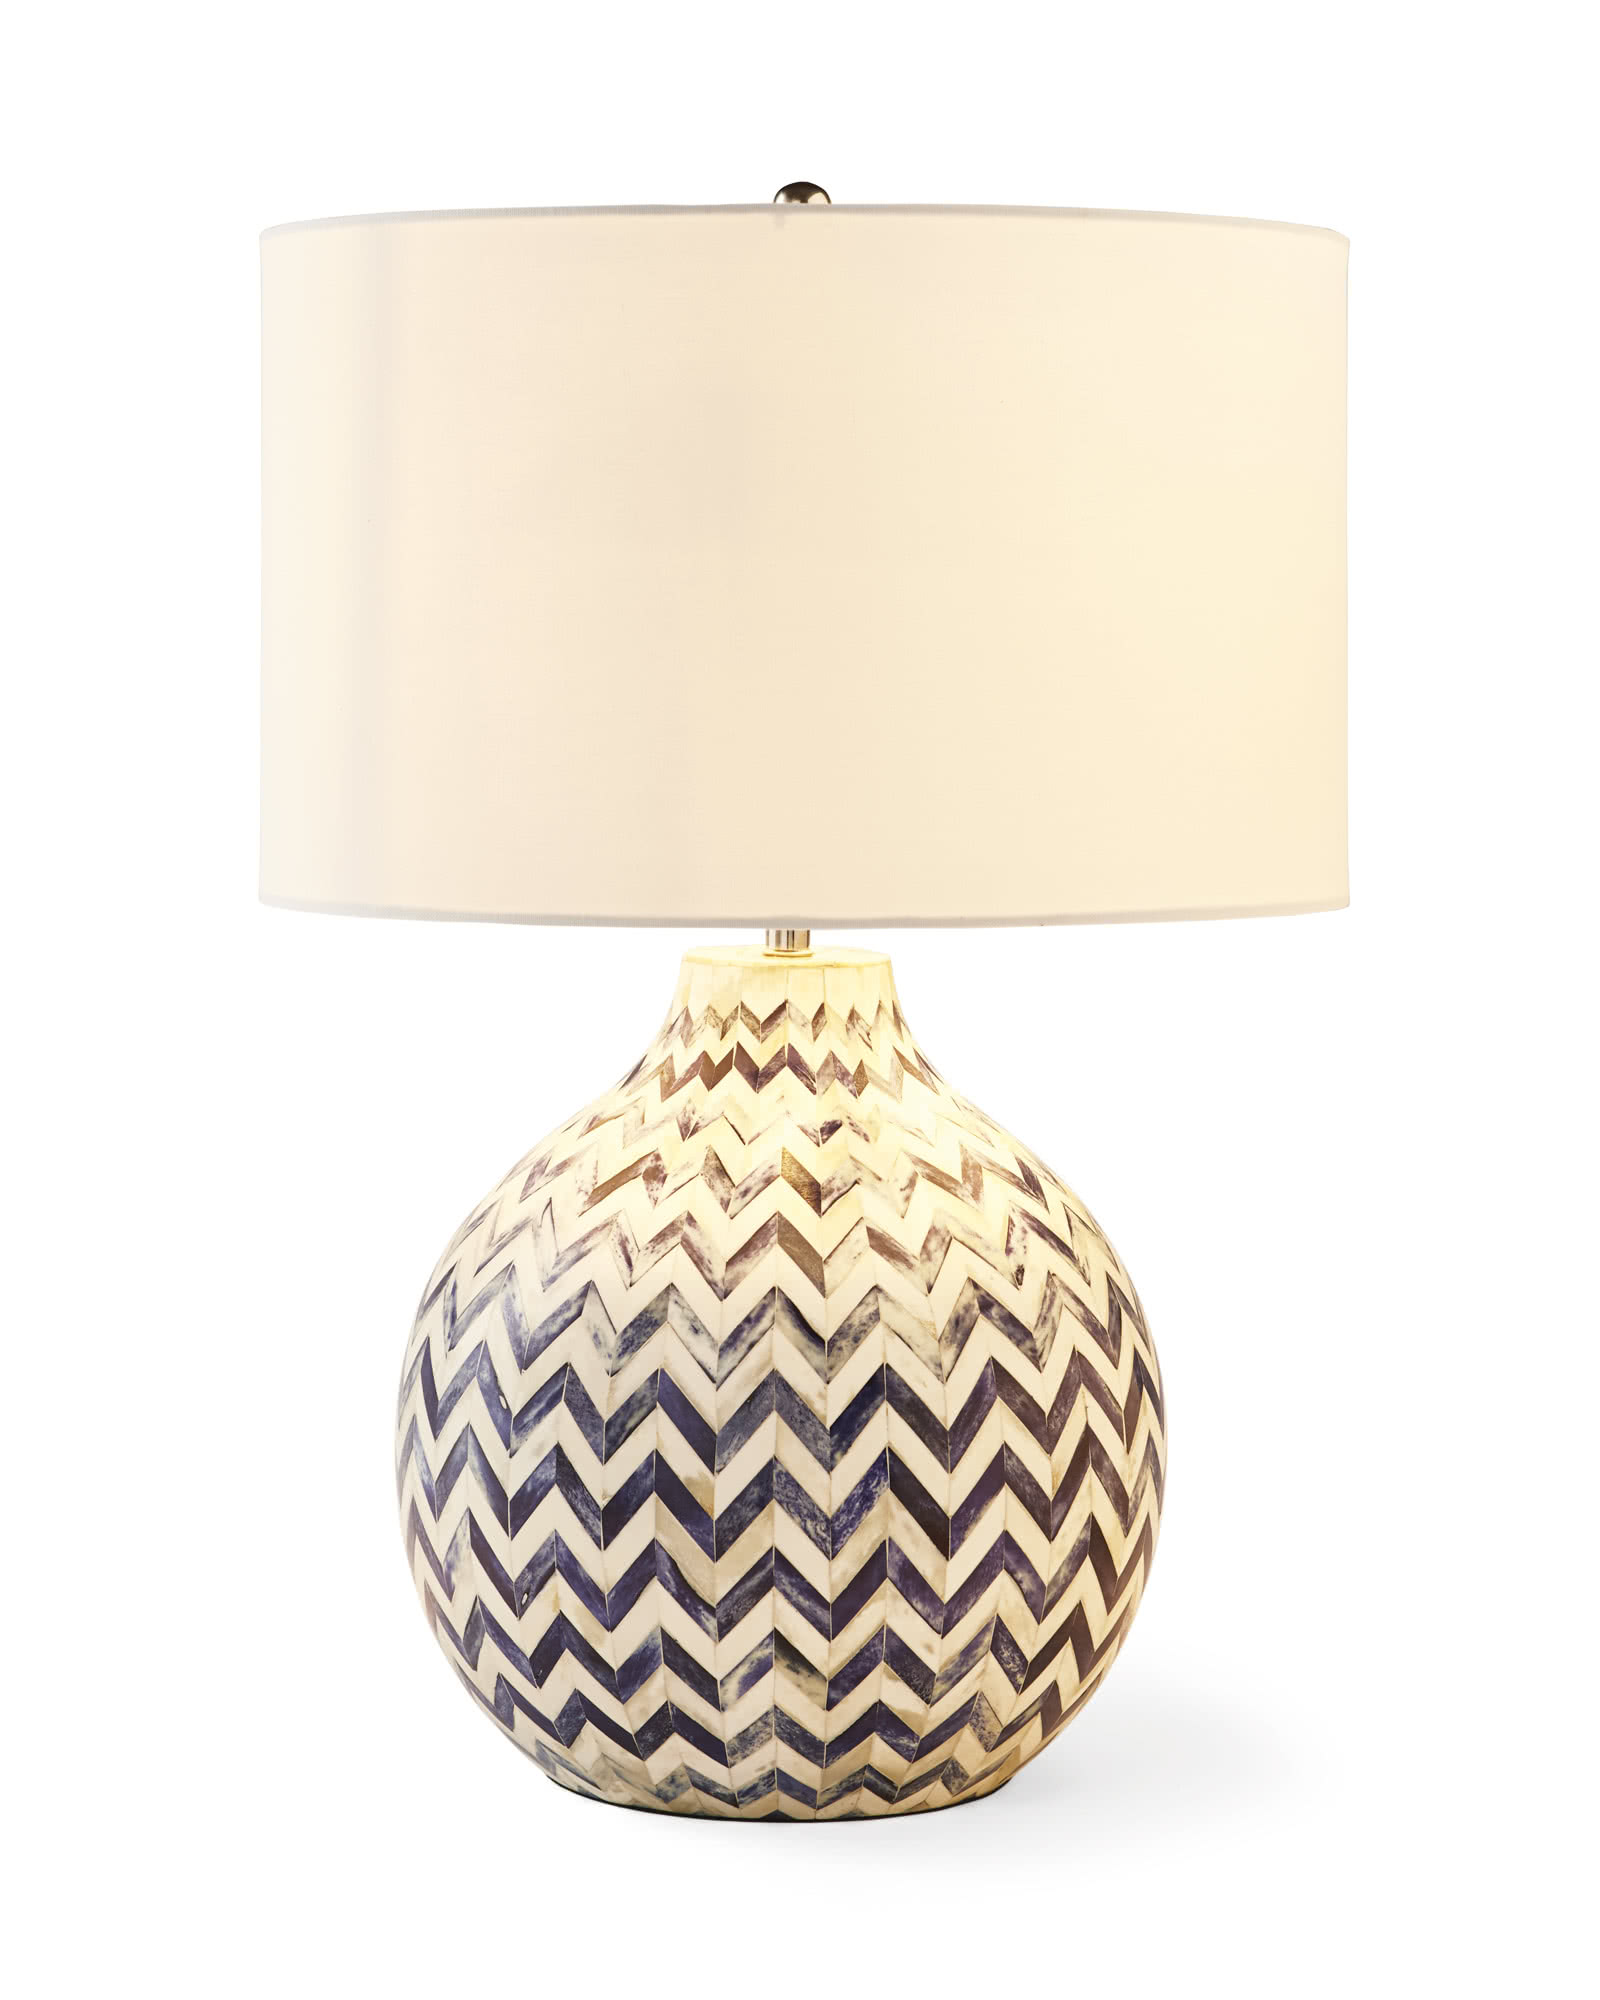 Inlaid Bone Table Lamp